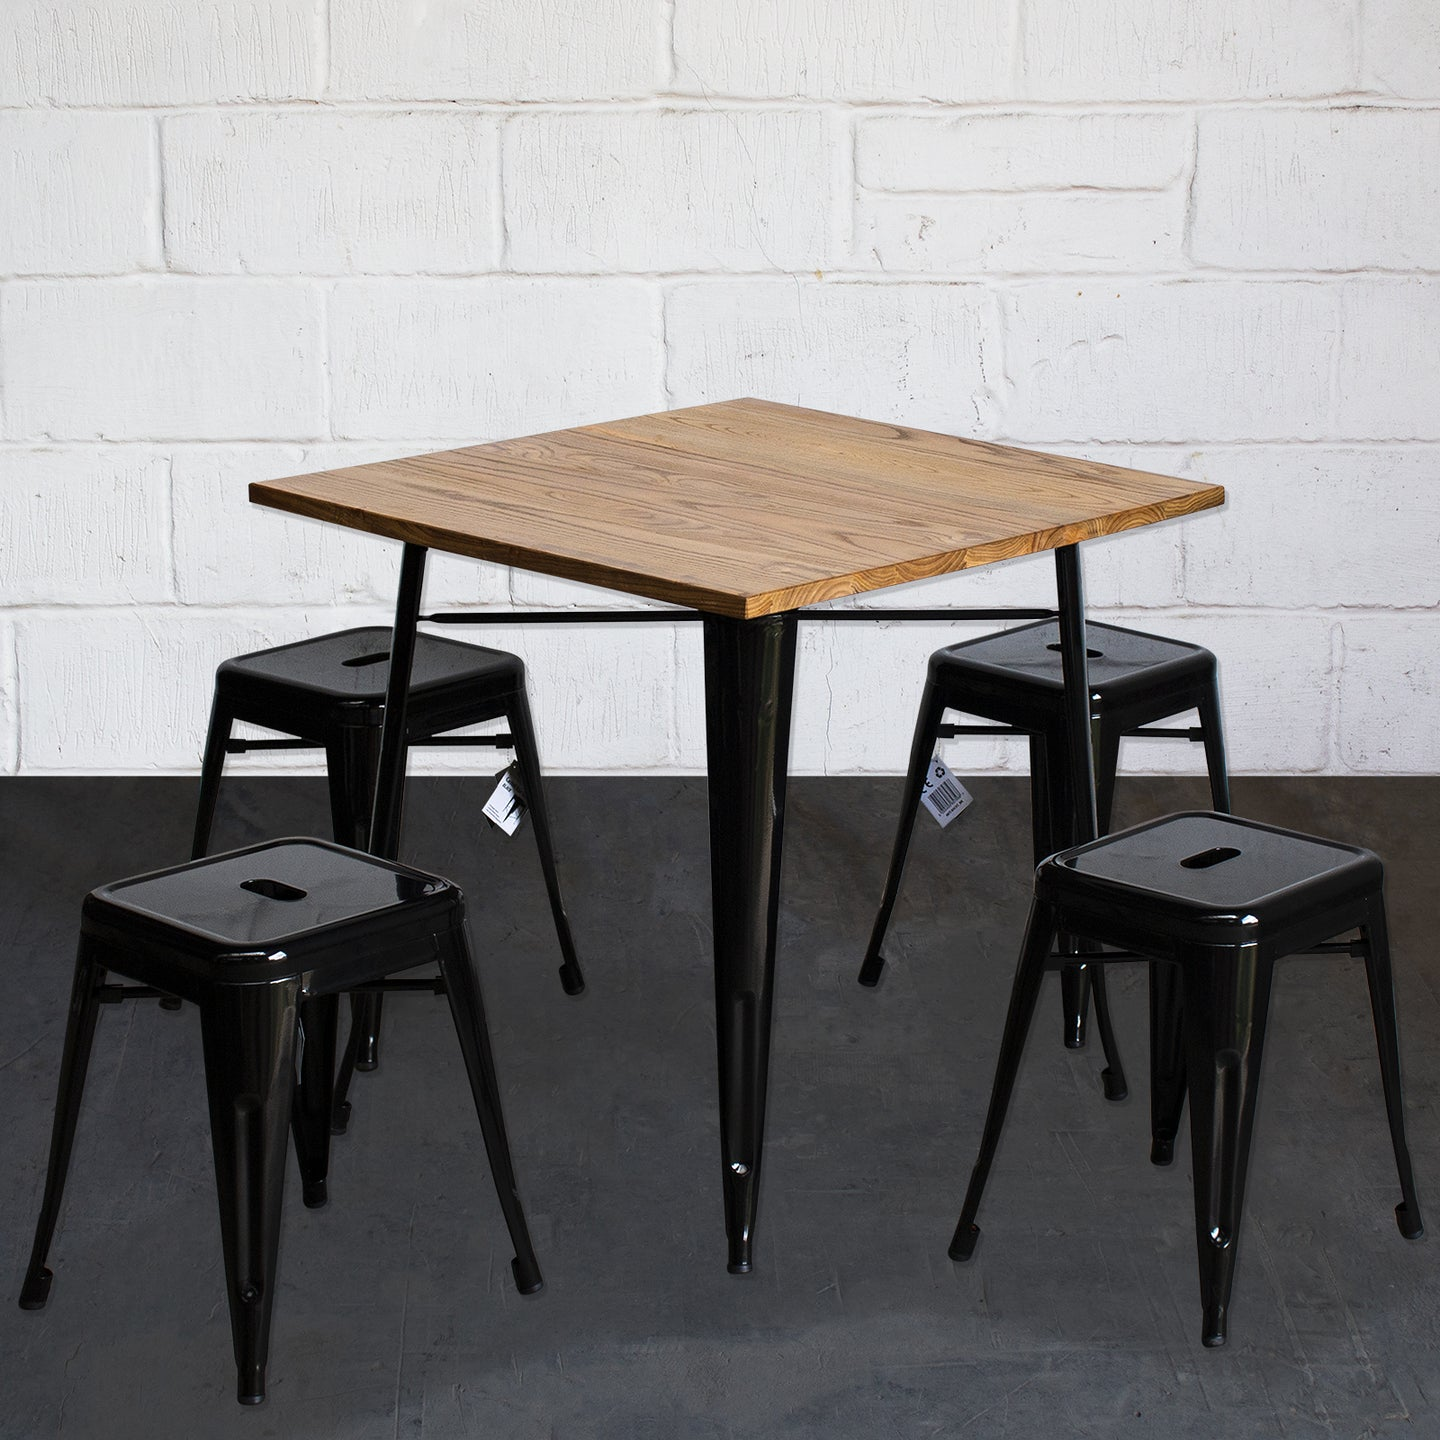 5PC Enna Table & Castel Stool Set - Black